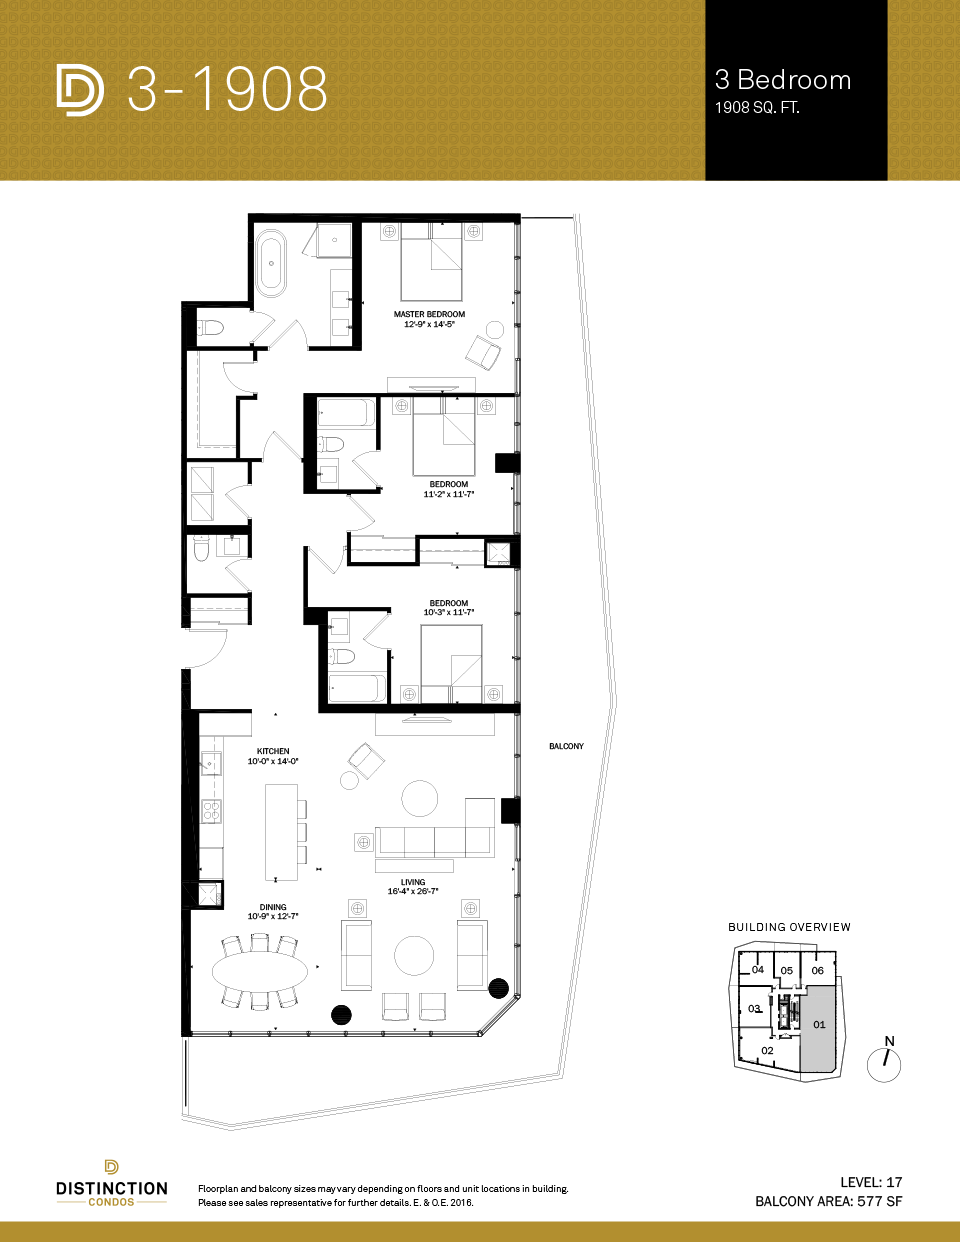 distinction condos floorplan 3-1908_2